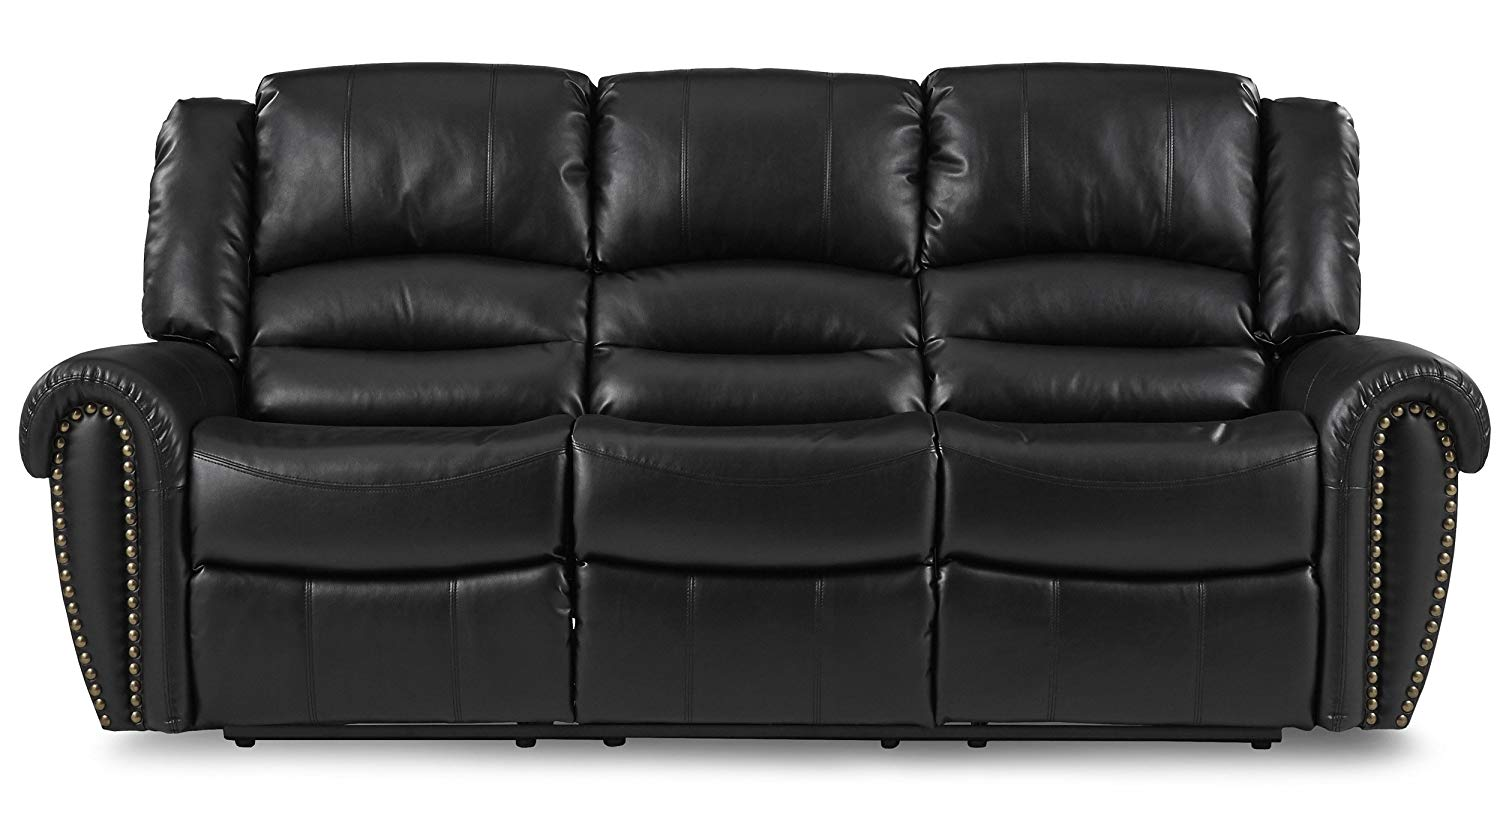 Modern Recliner Sofa Set